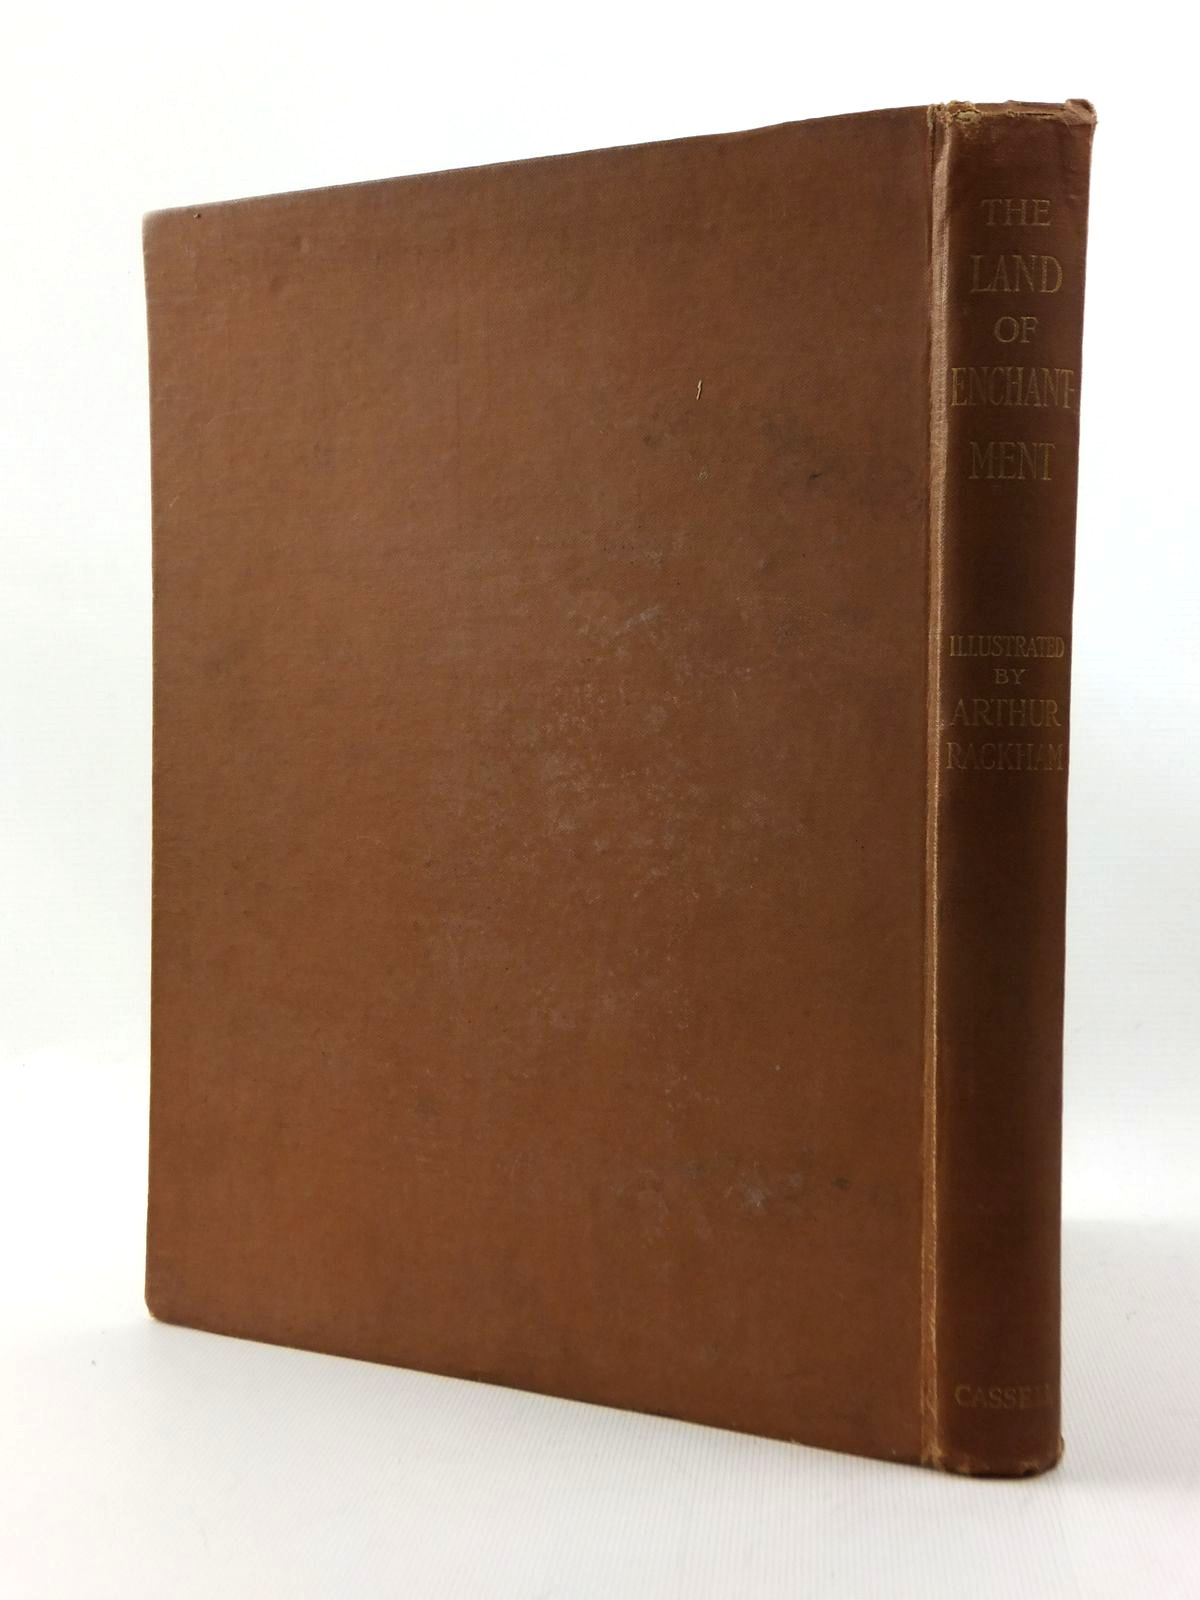 Photo of THE LAND OF ENCHANTMENT written by Bonser, A.E. Woolf, Sidney Bucheim, E.S. illustrated by Rackham, Arthur published by Cassell & Co. Ltd. (STOCK CODE: 1208805)  for sale by Stella & Rose's Books